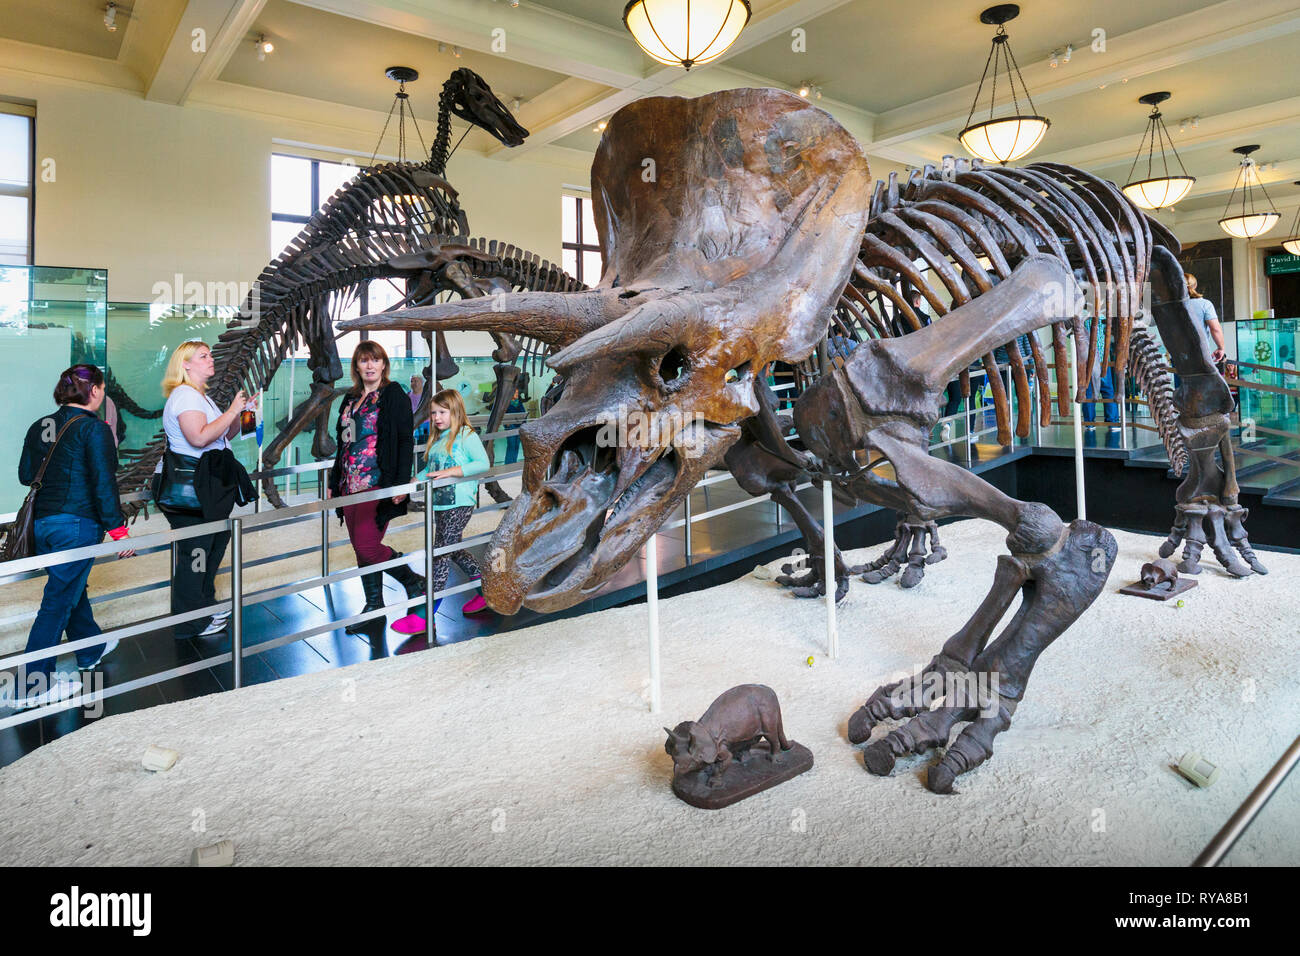 Fossil specimen of the plant-eating dinosaur Triceratops in the American Museum of Natural History.  New York City, New York State, United States of A - Stock Image